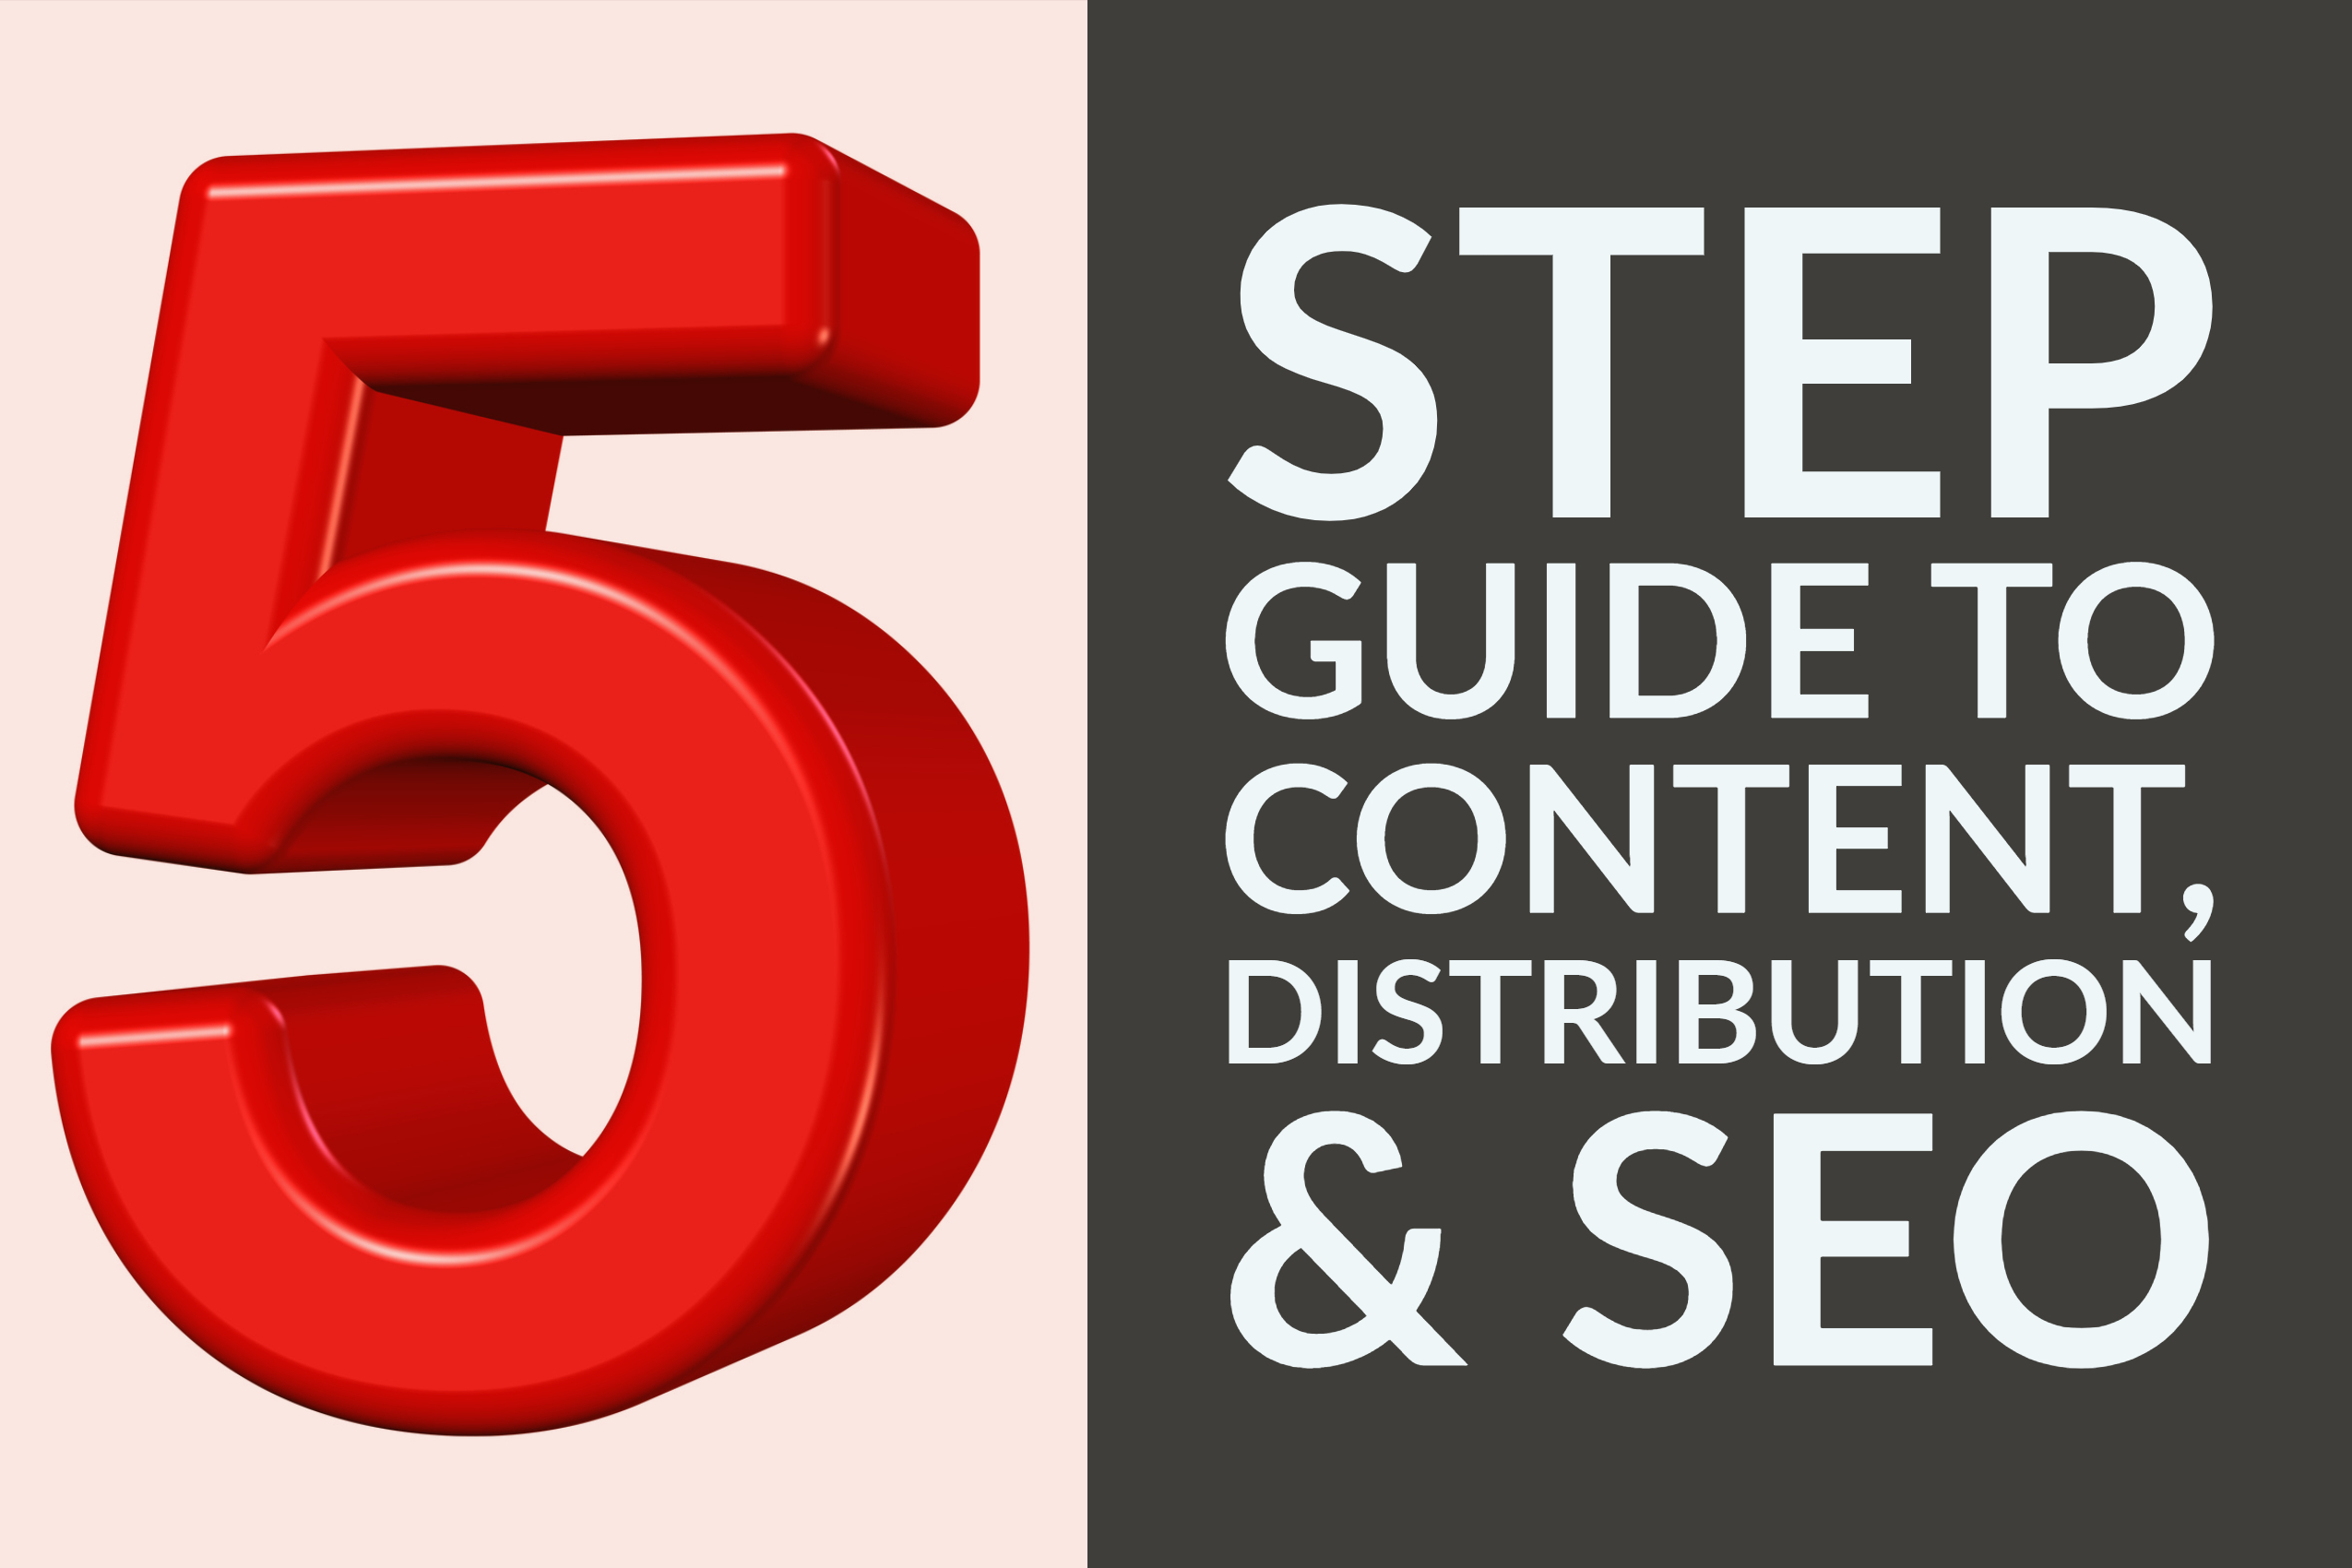 Visual 5 Step Guide To Content, Distribution & SEO